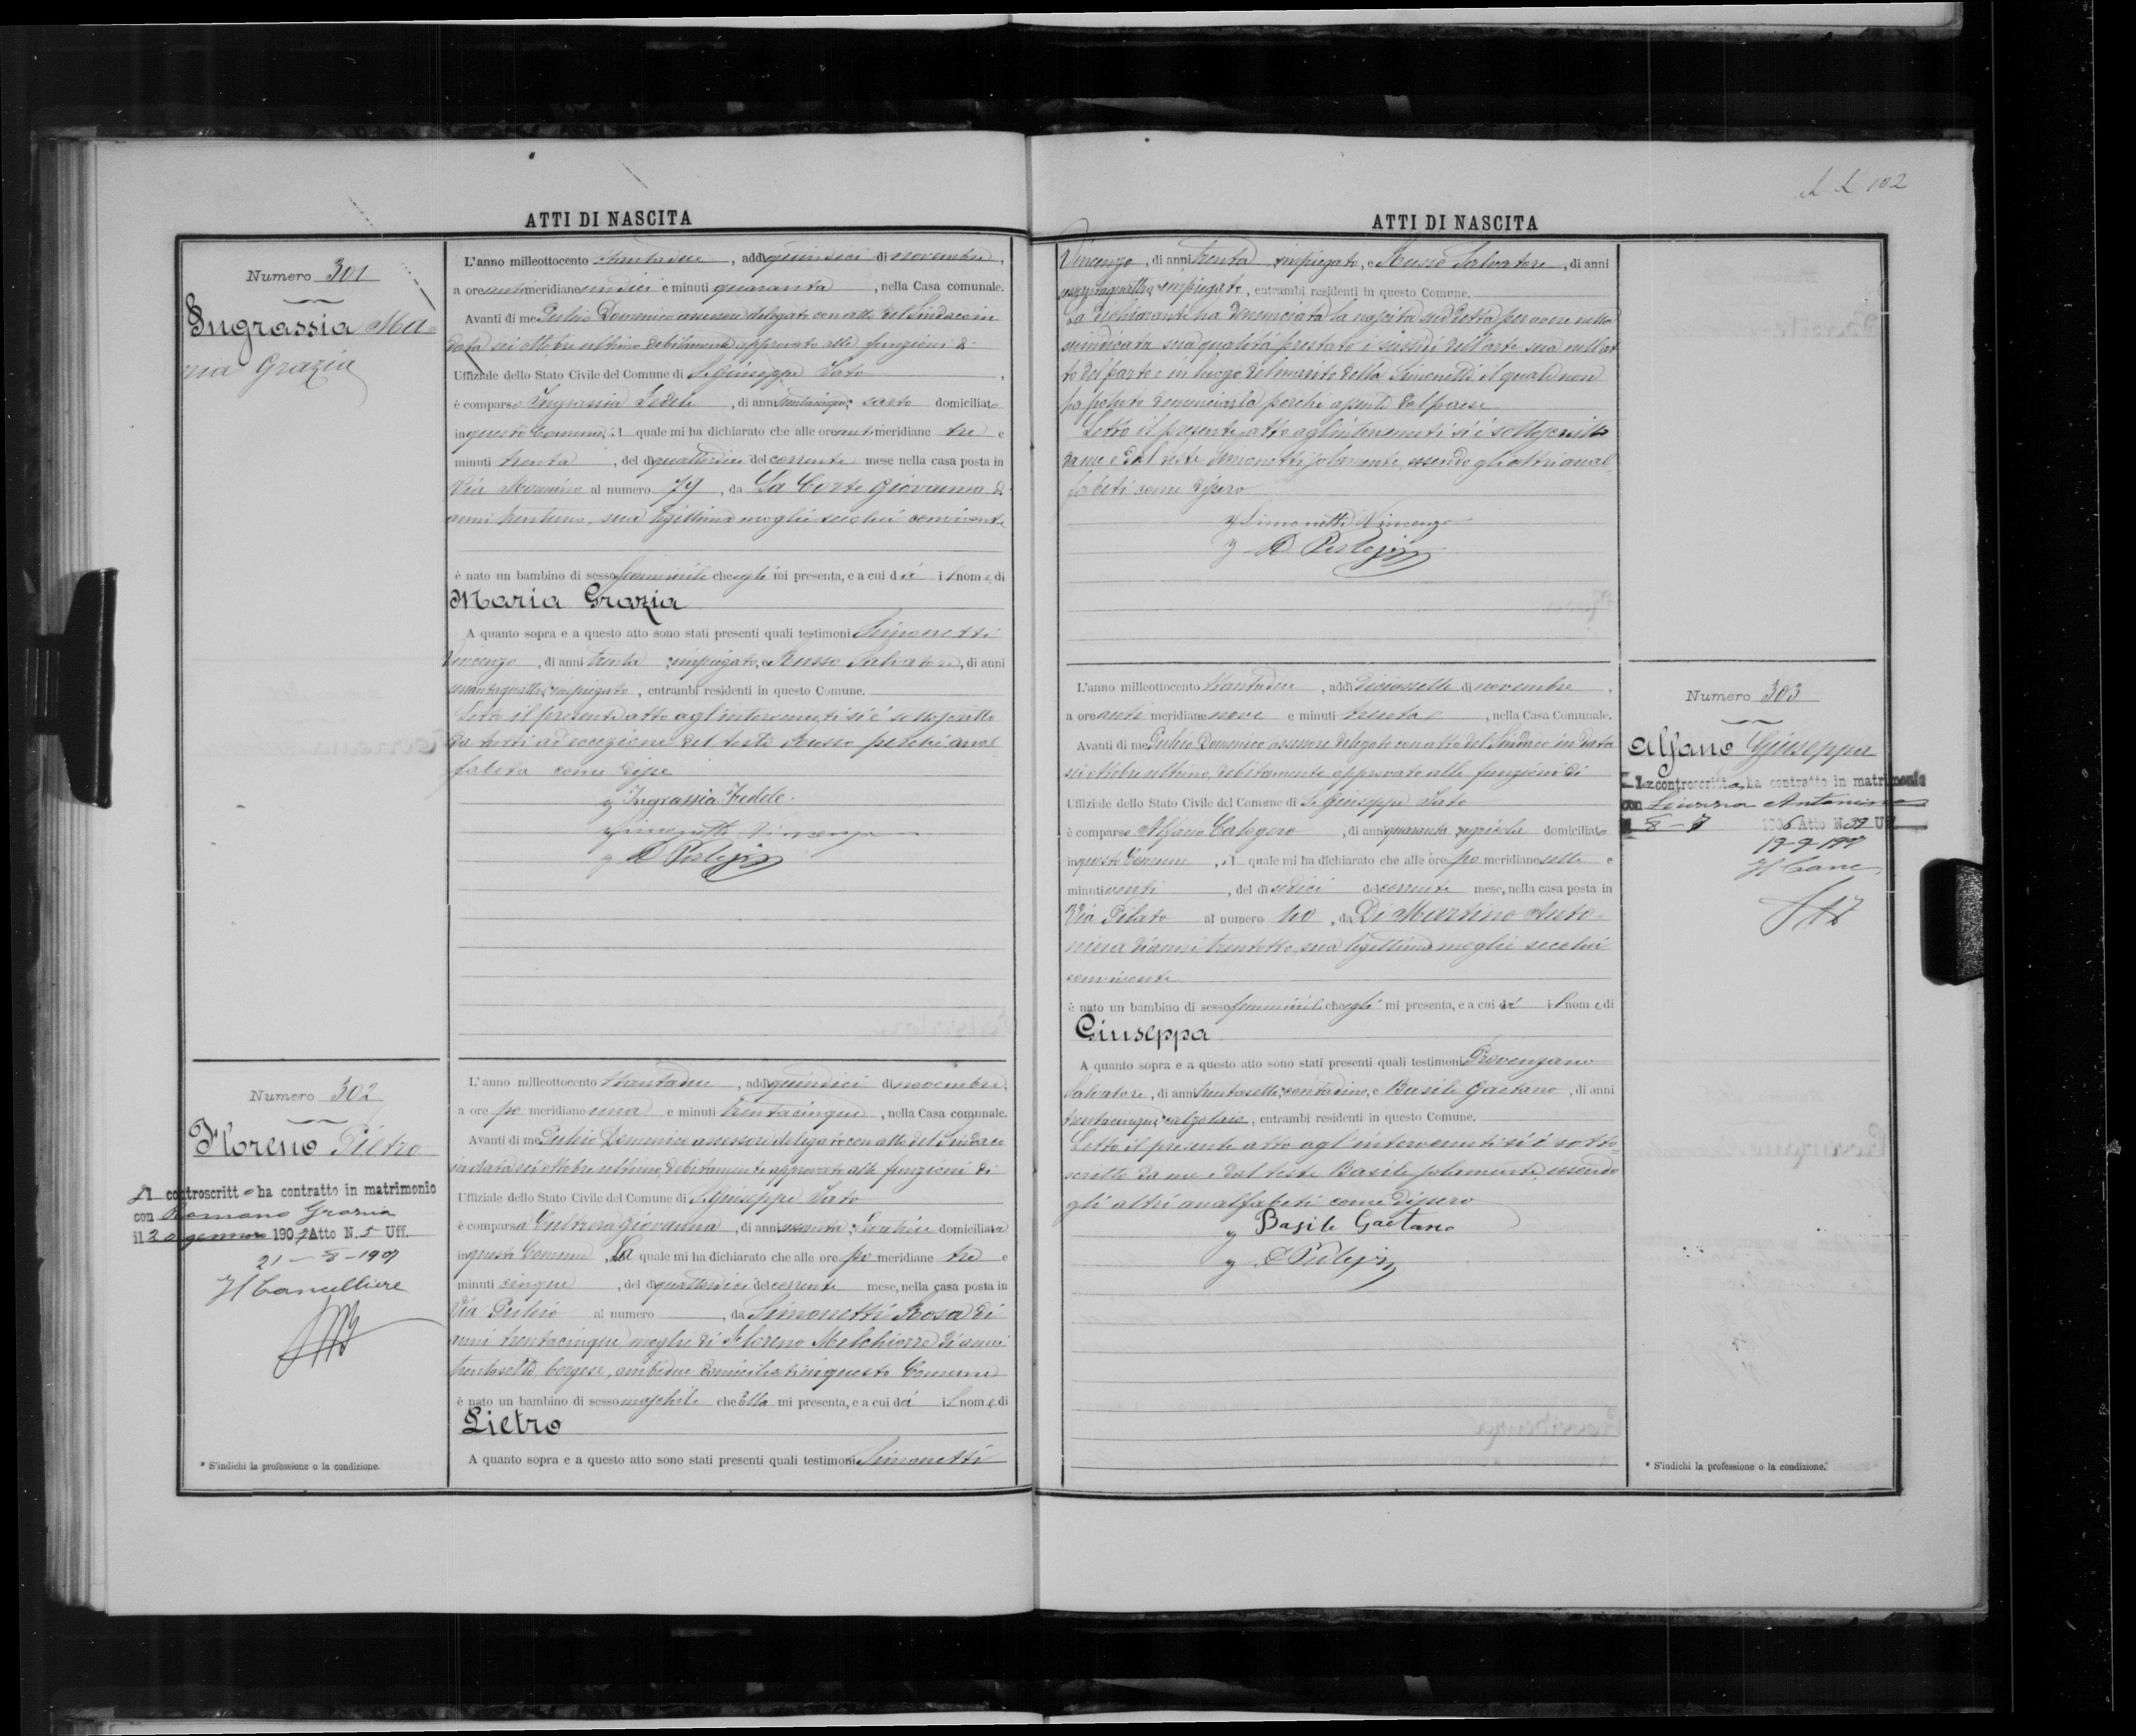 pietro floreno birth record.jpg